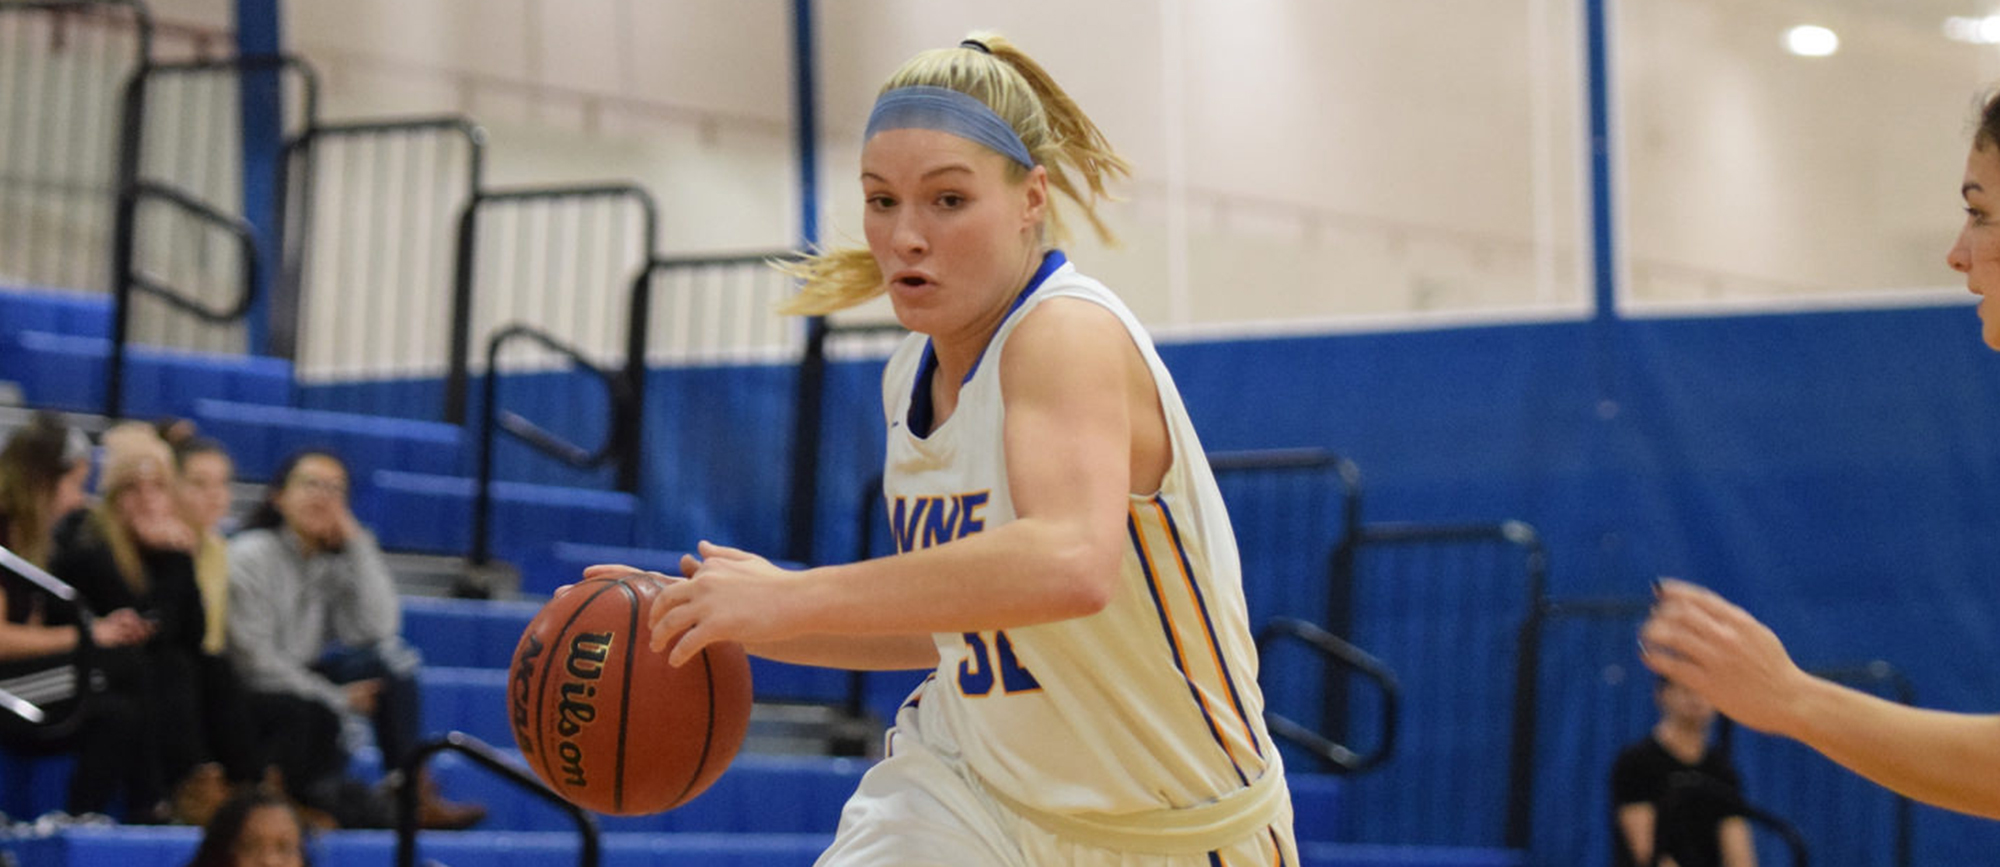 Courtney Carlson led the Golden Bears with 20 points as WNE defeated UNE 67-59 on the road in the CCC Tournament semifinals on Thursday night. (Photo by Rachael Margossian)